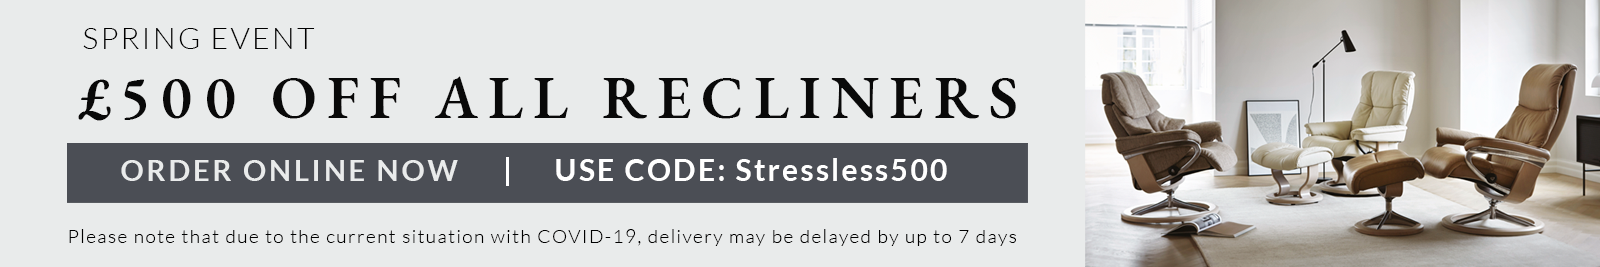 Product list page delivery delay 500.png